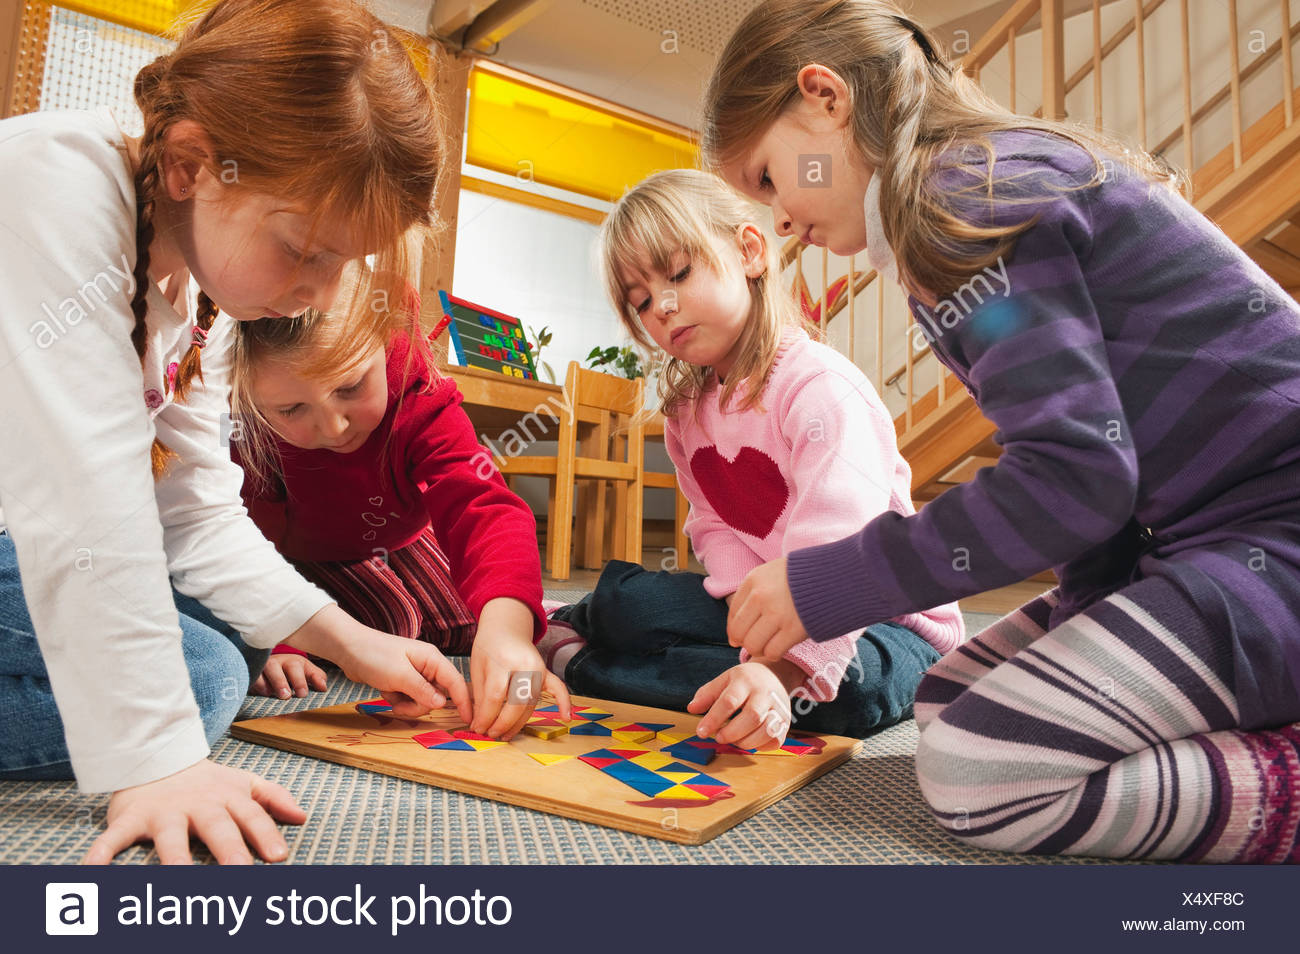 Germany, Children in nursery playing a learning game together, close-up Stock Photo